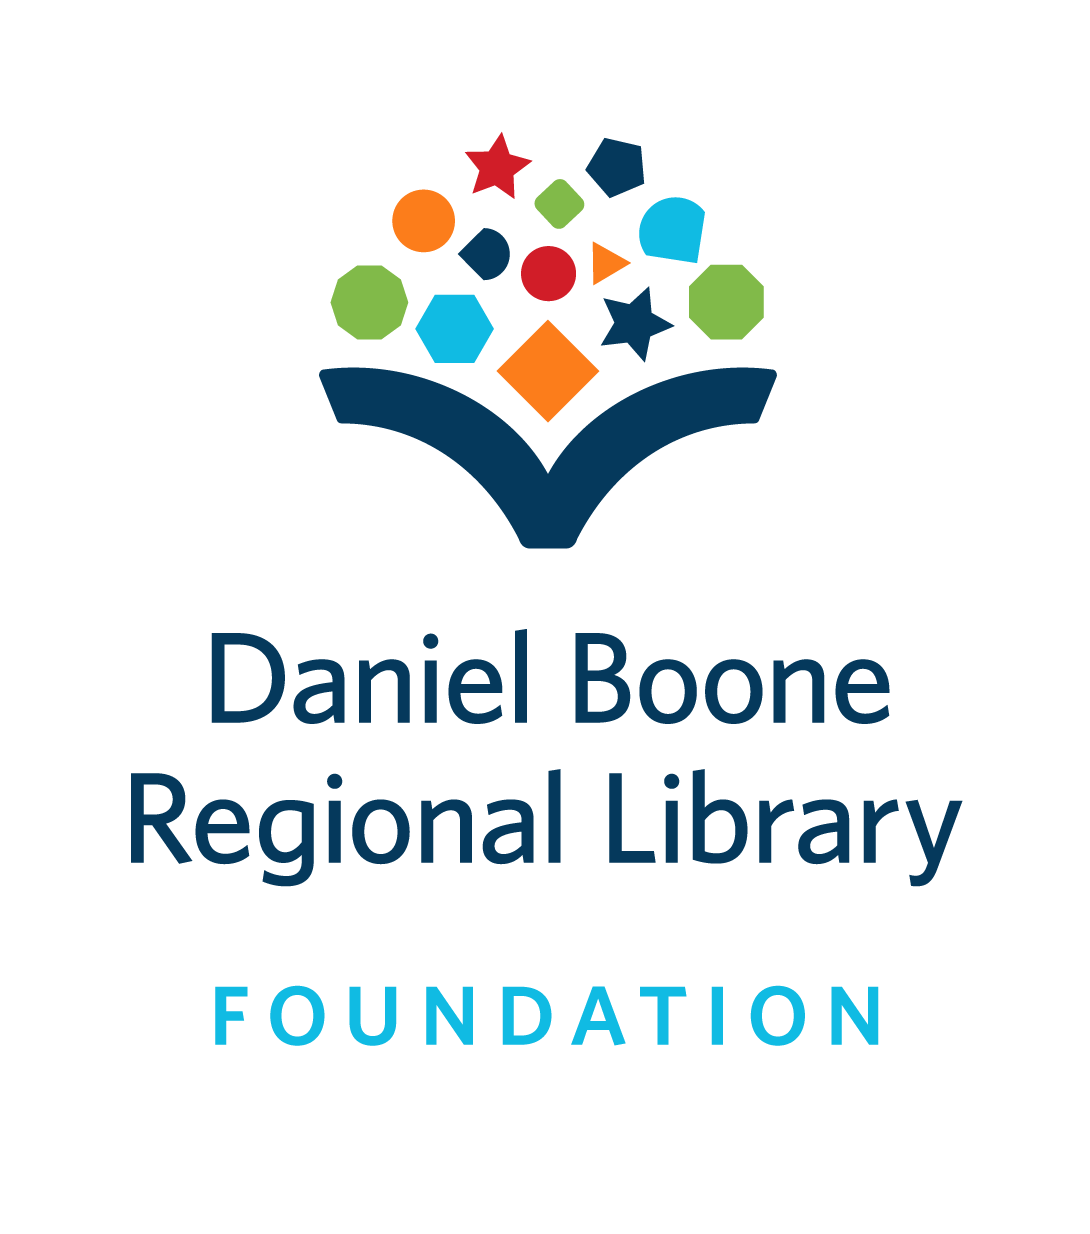 Daniel Boone Regional Library Foundation